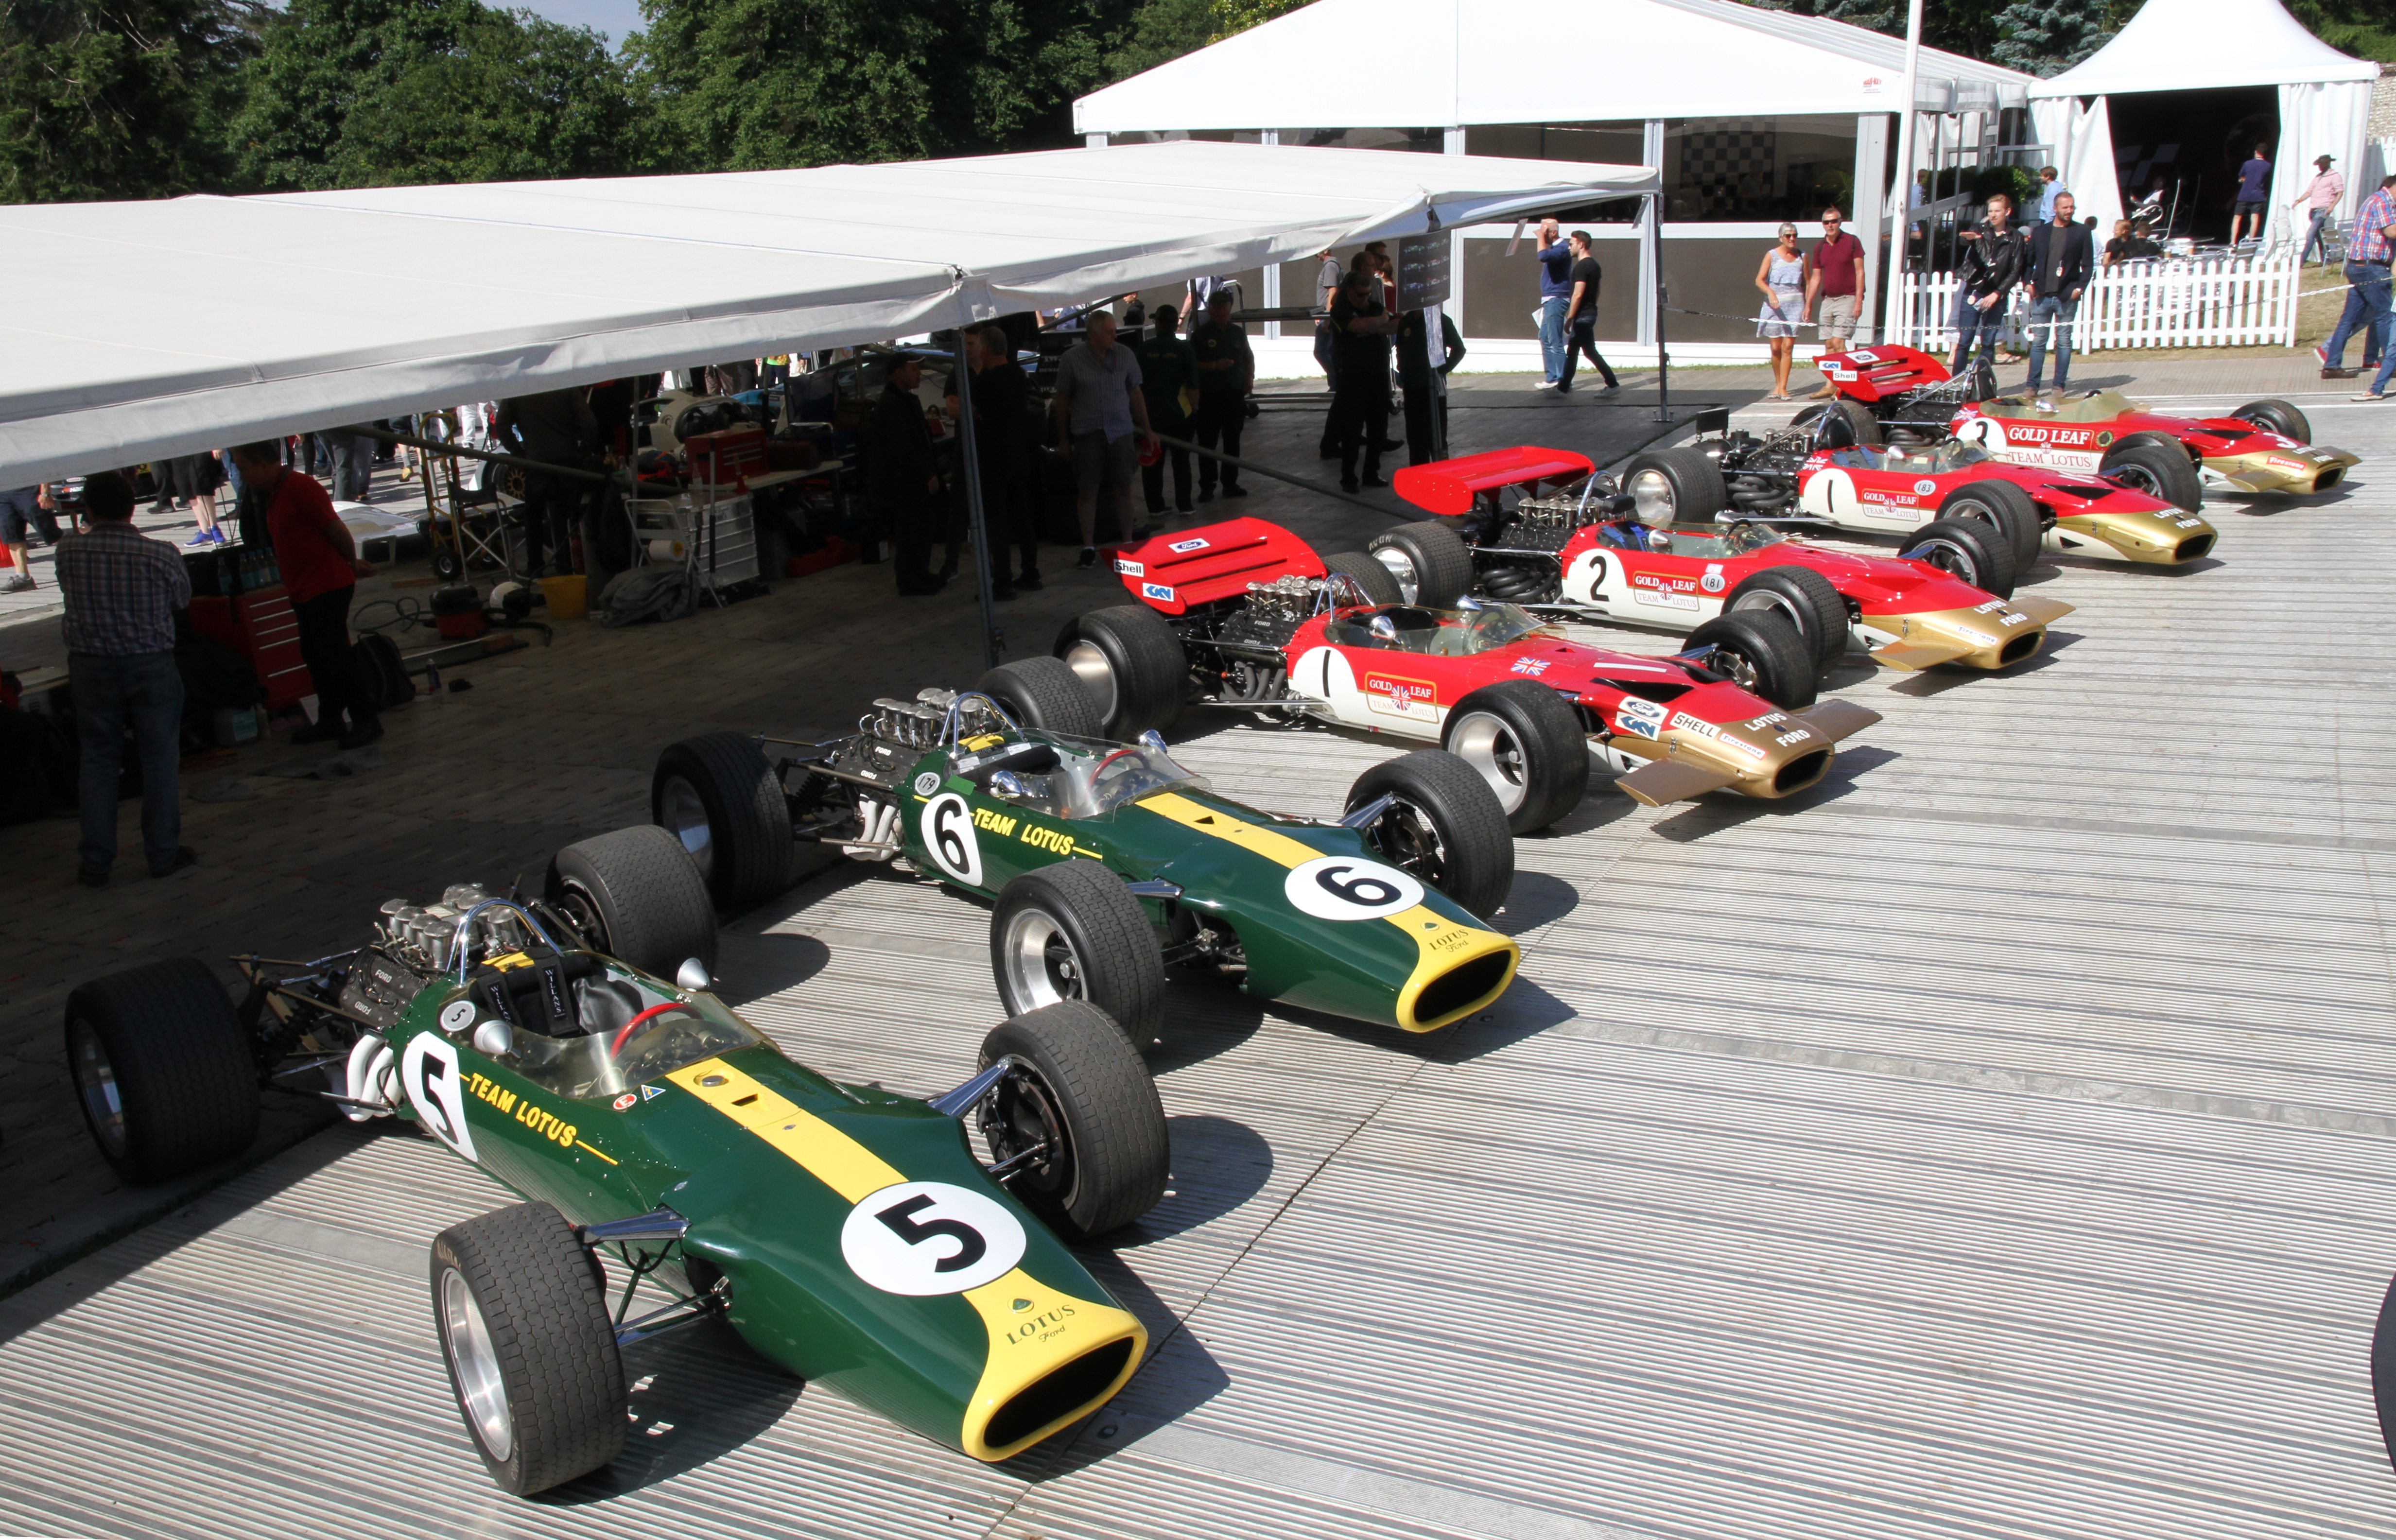 Classic Team Lotus at Goodwood Festival of Speed 2017